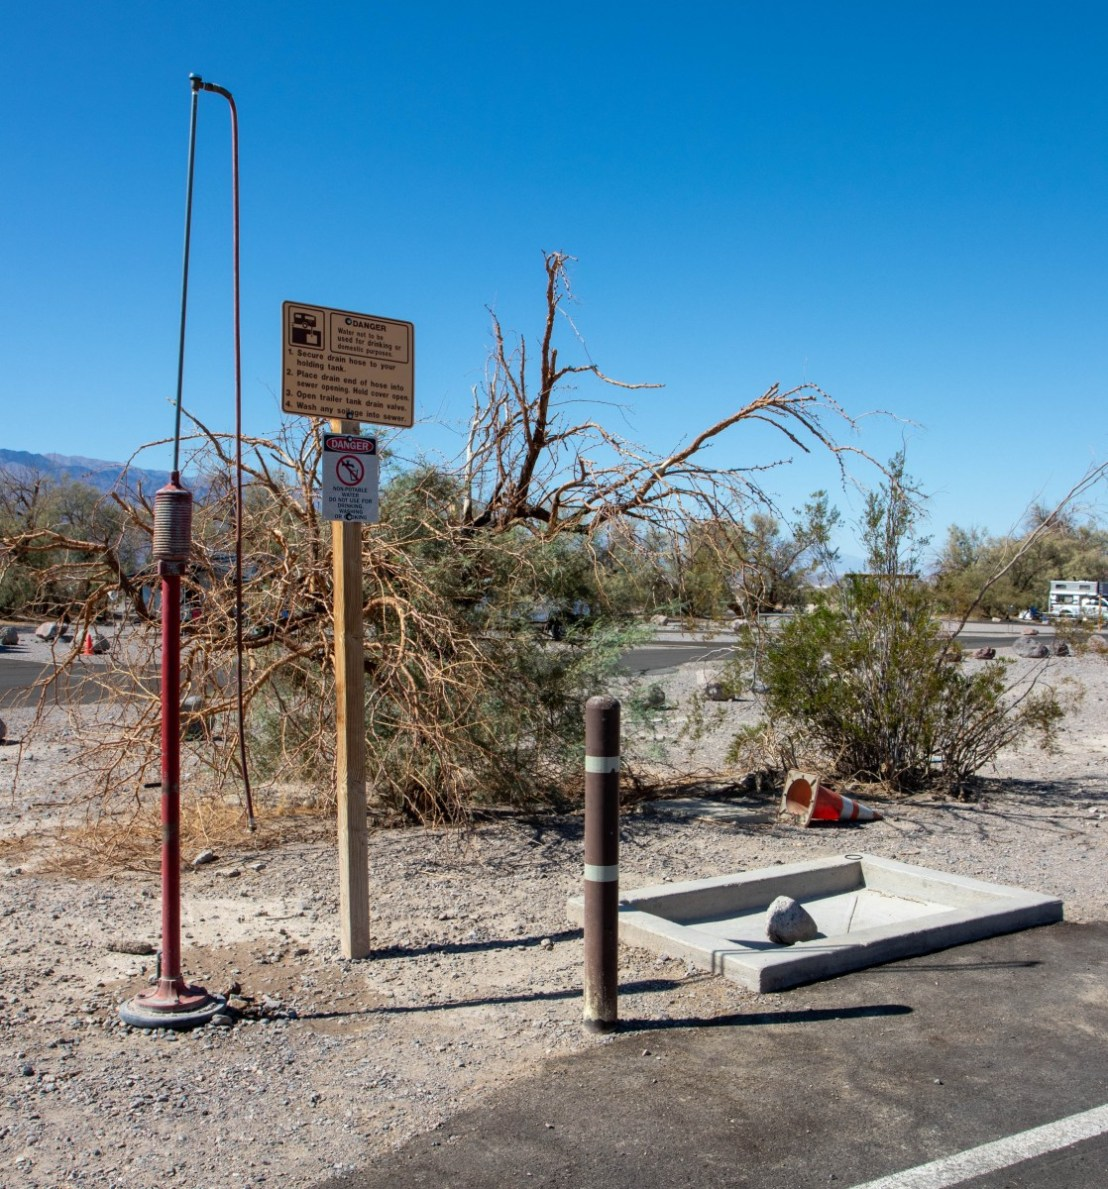 NPS Furnace Creek Campground Dump Station